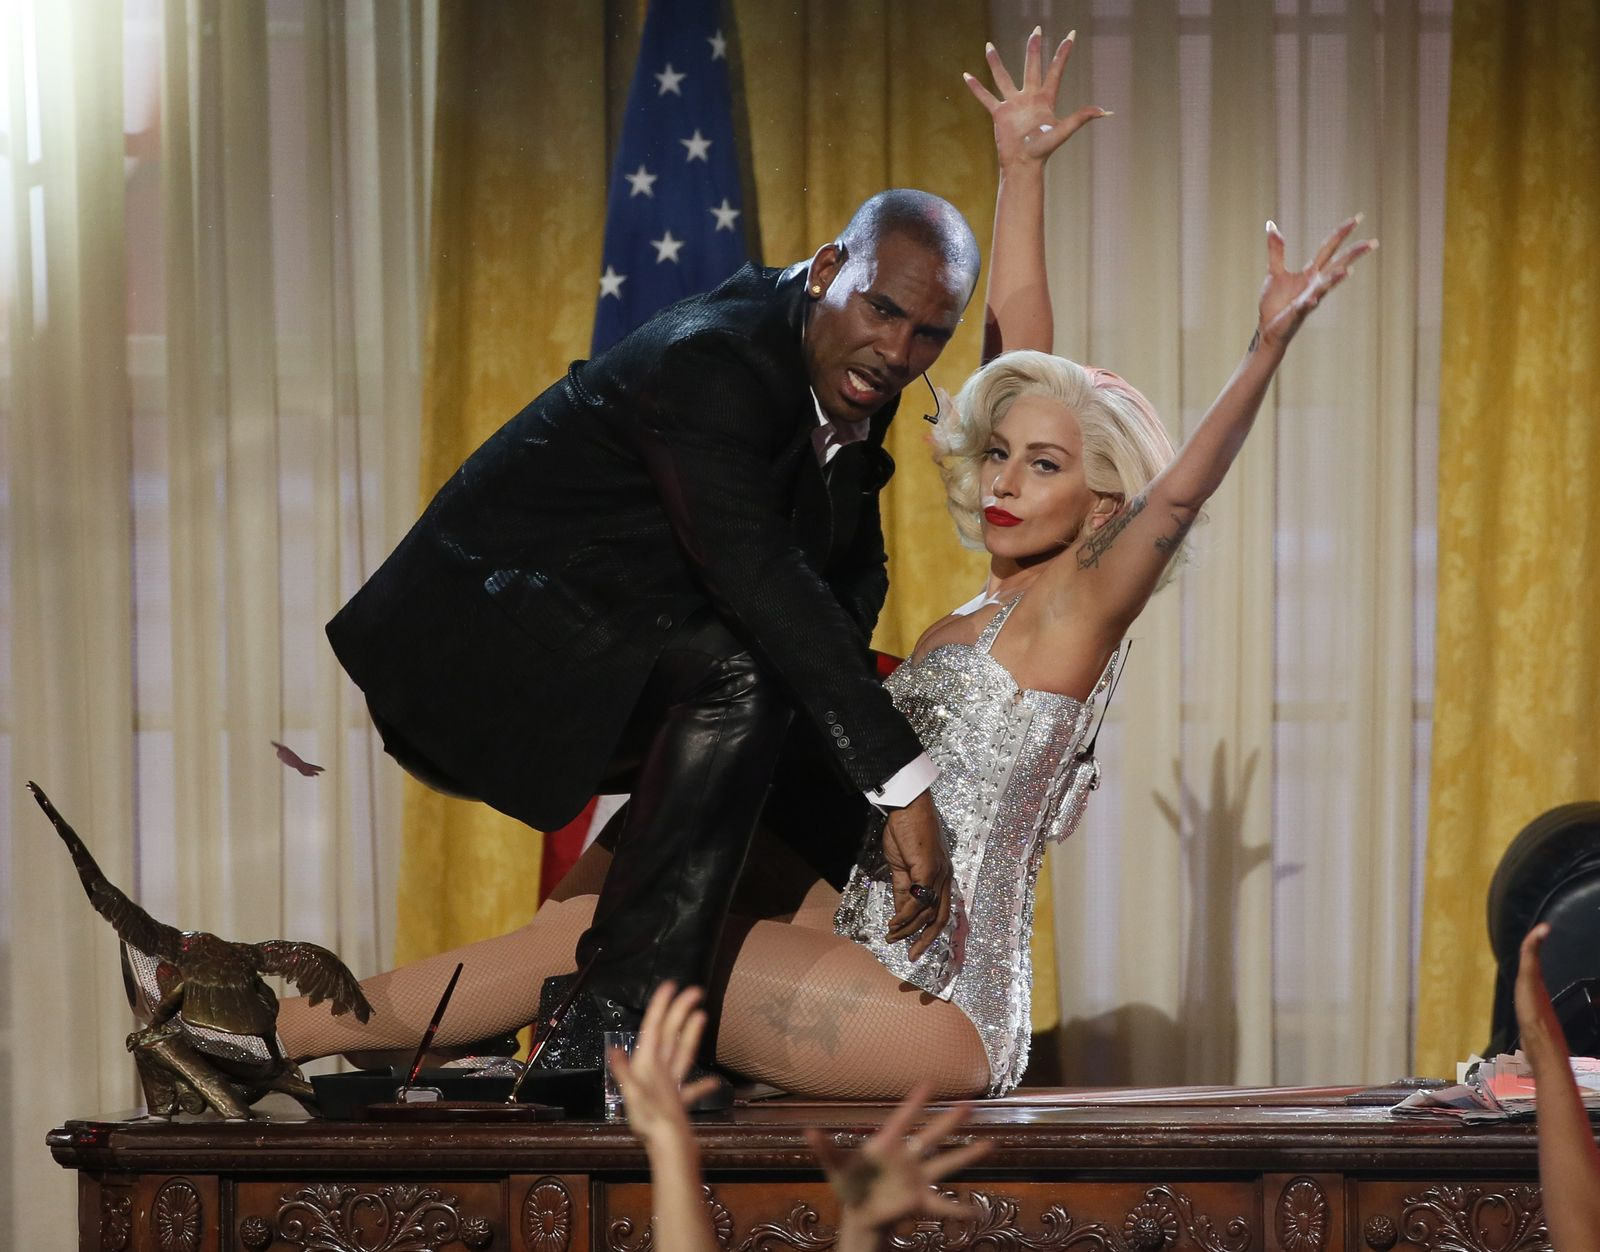 R. Kelly/ Lady Gaga